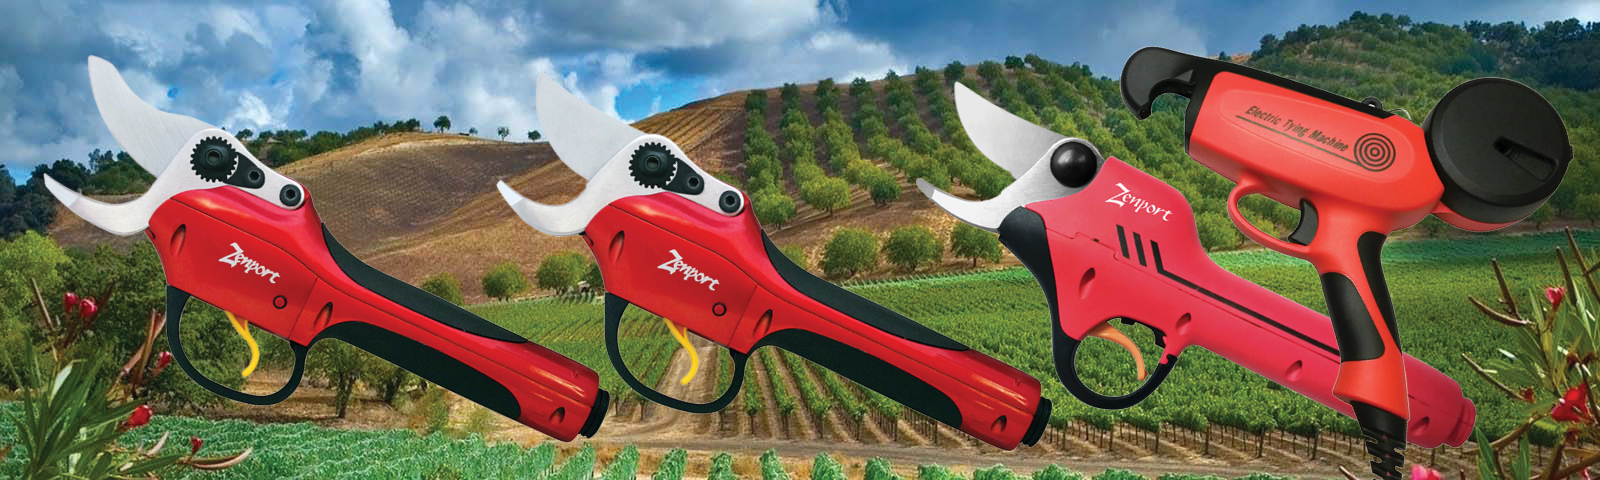 Battery Powered Electric Pruning Shears And Tools